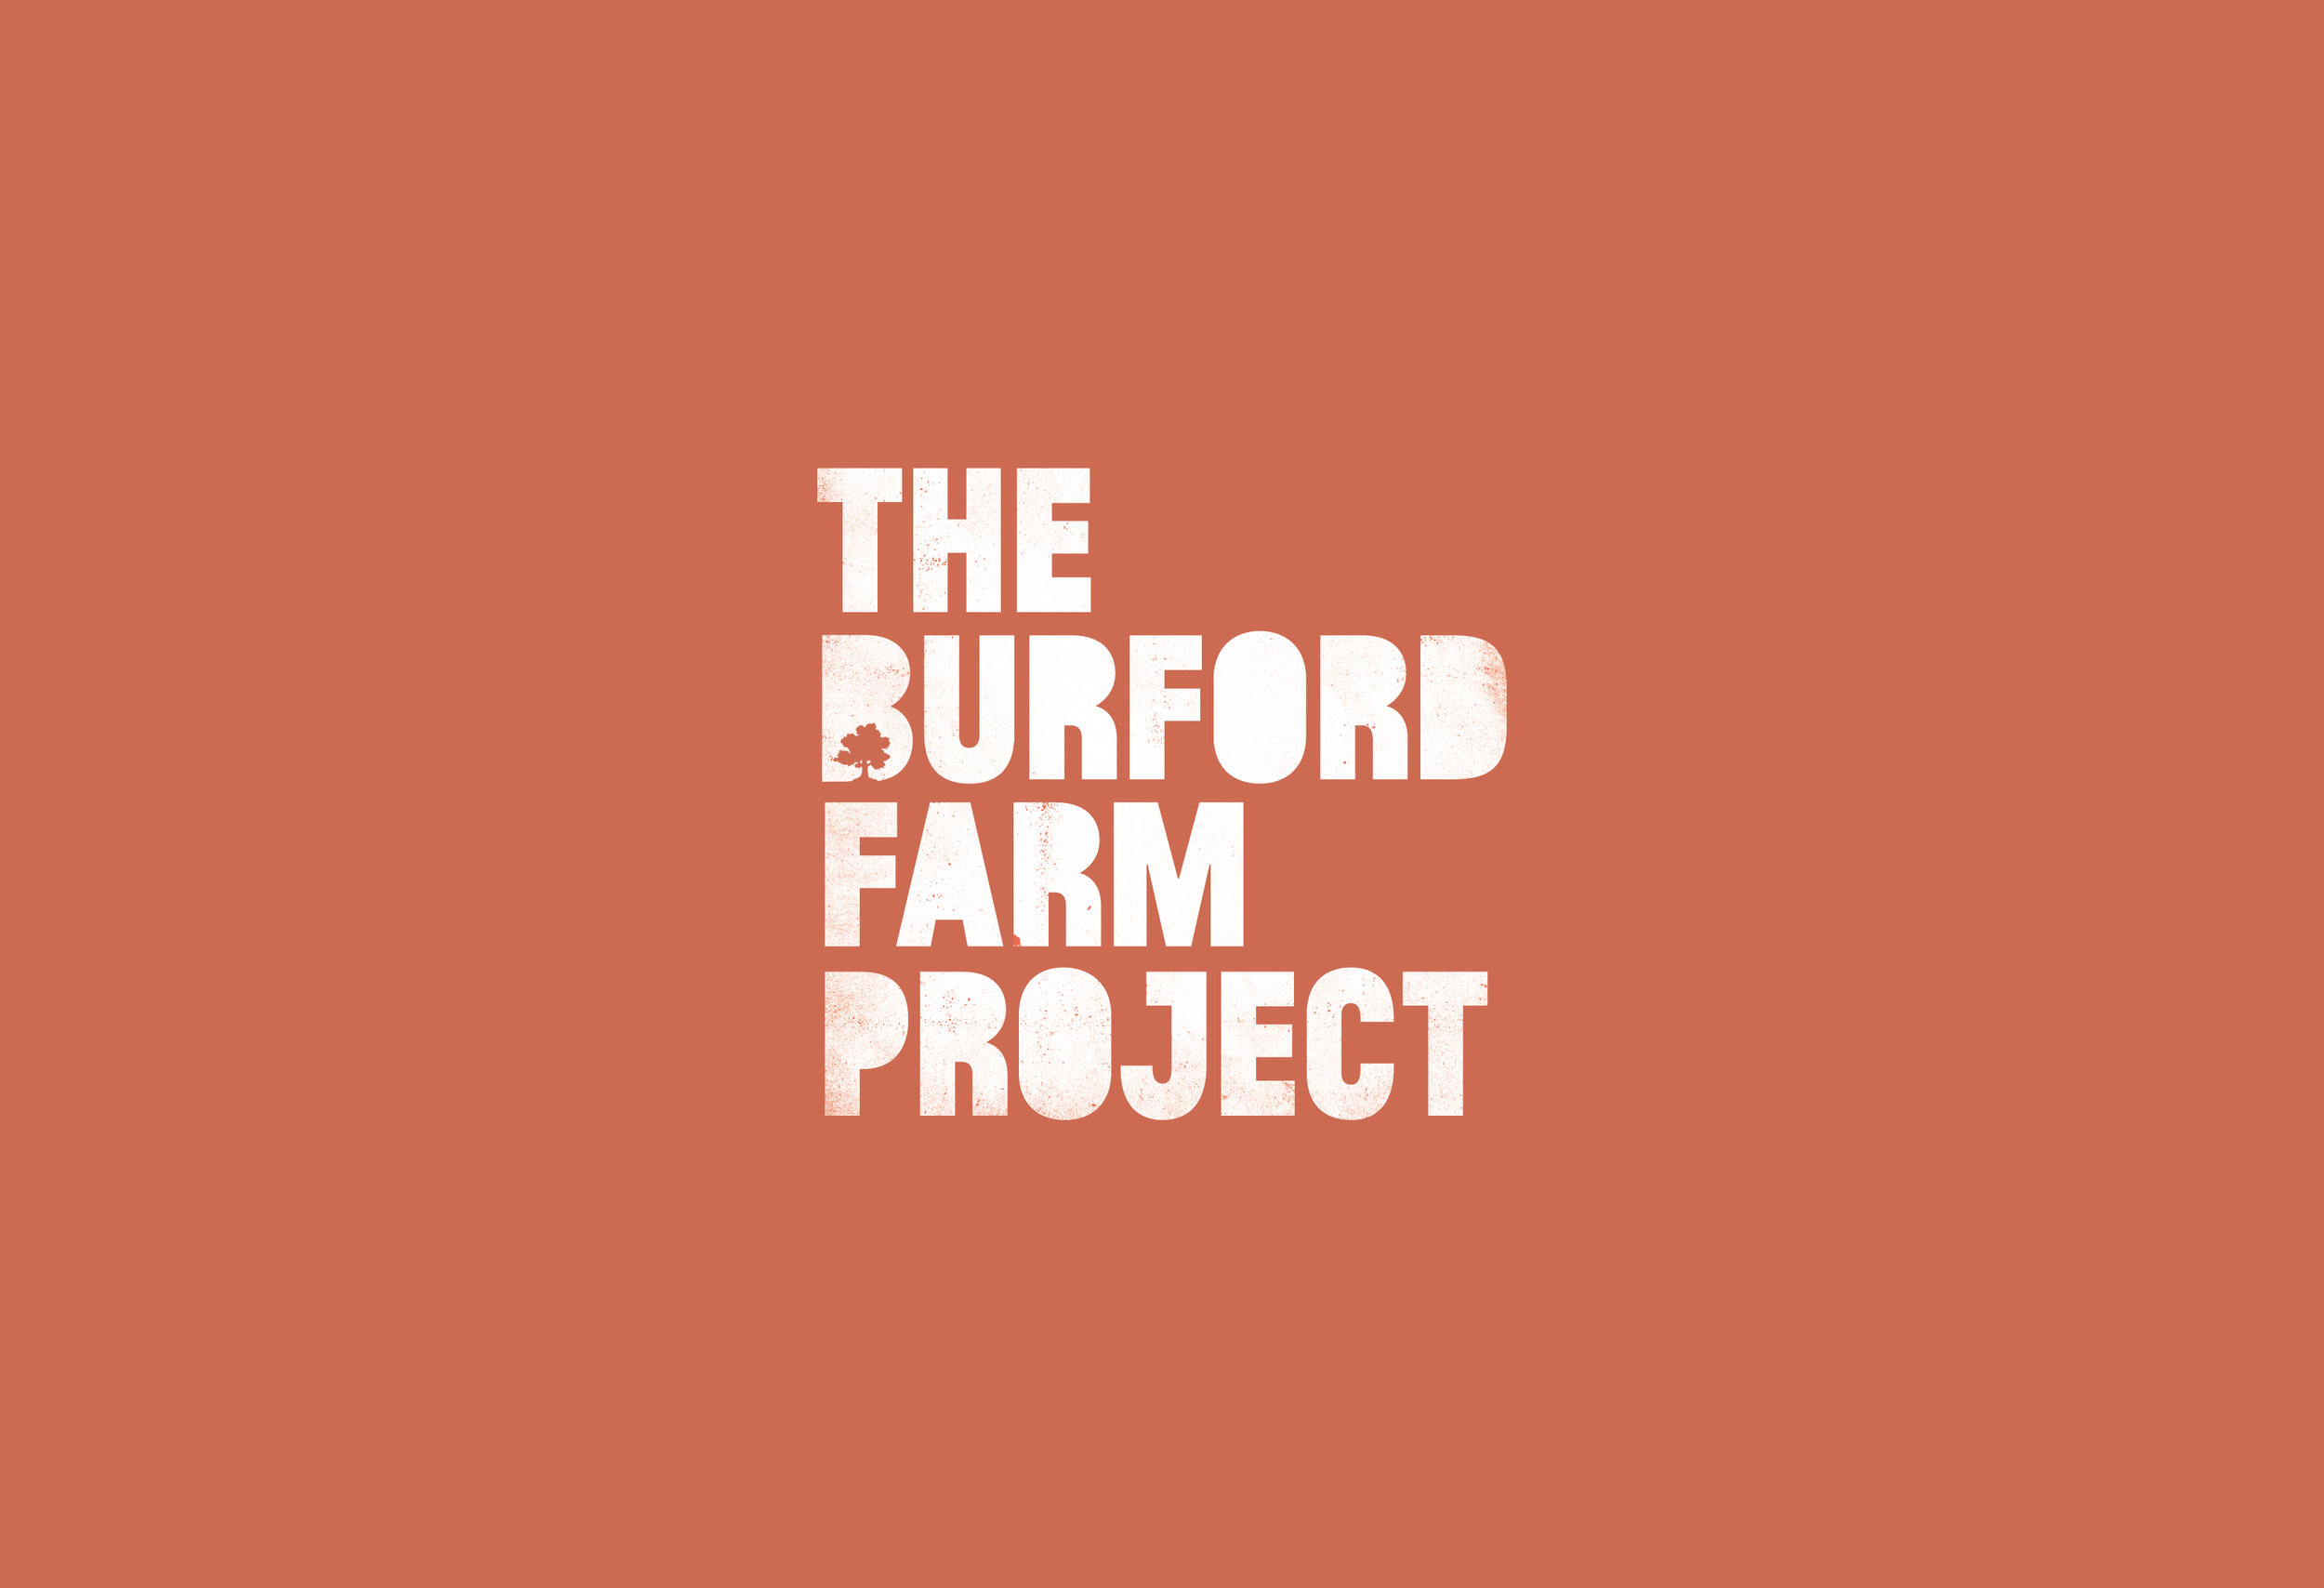 The_Burford_Farm_Project_Company_identity_design_Alan_Clarke-Symonds_graphic_design_project_logo3.jpg